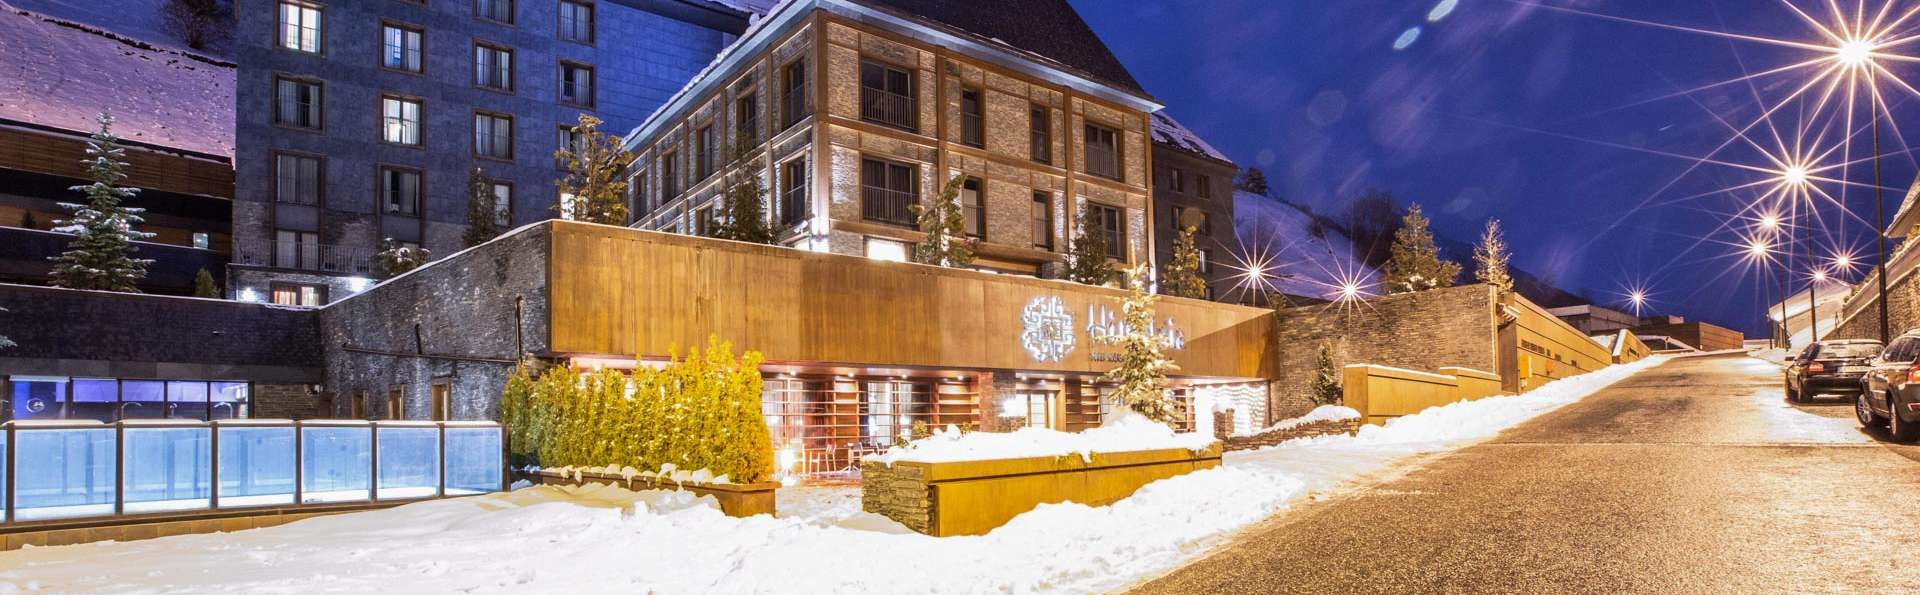 Hotel Himalaia Baqueira by Pierre & Vacances Premium - EDIT_N2_FRONT_04.jpg